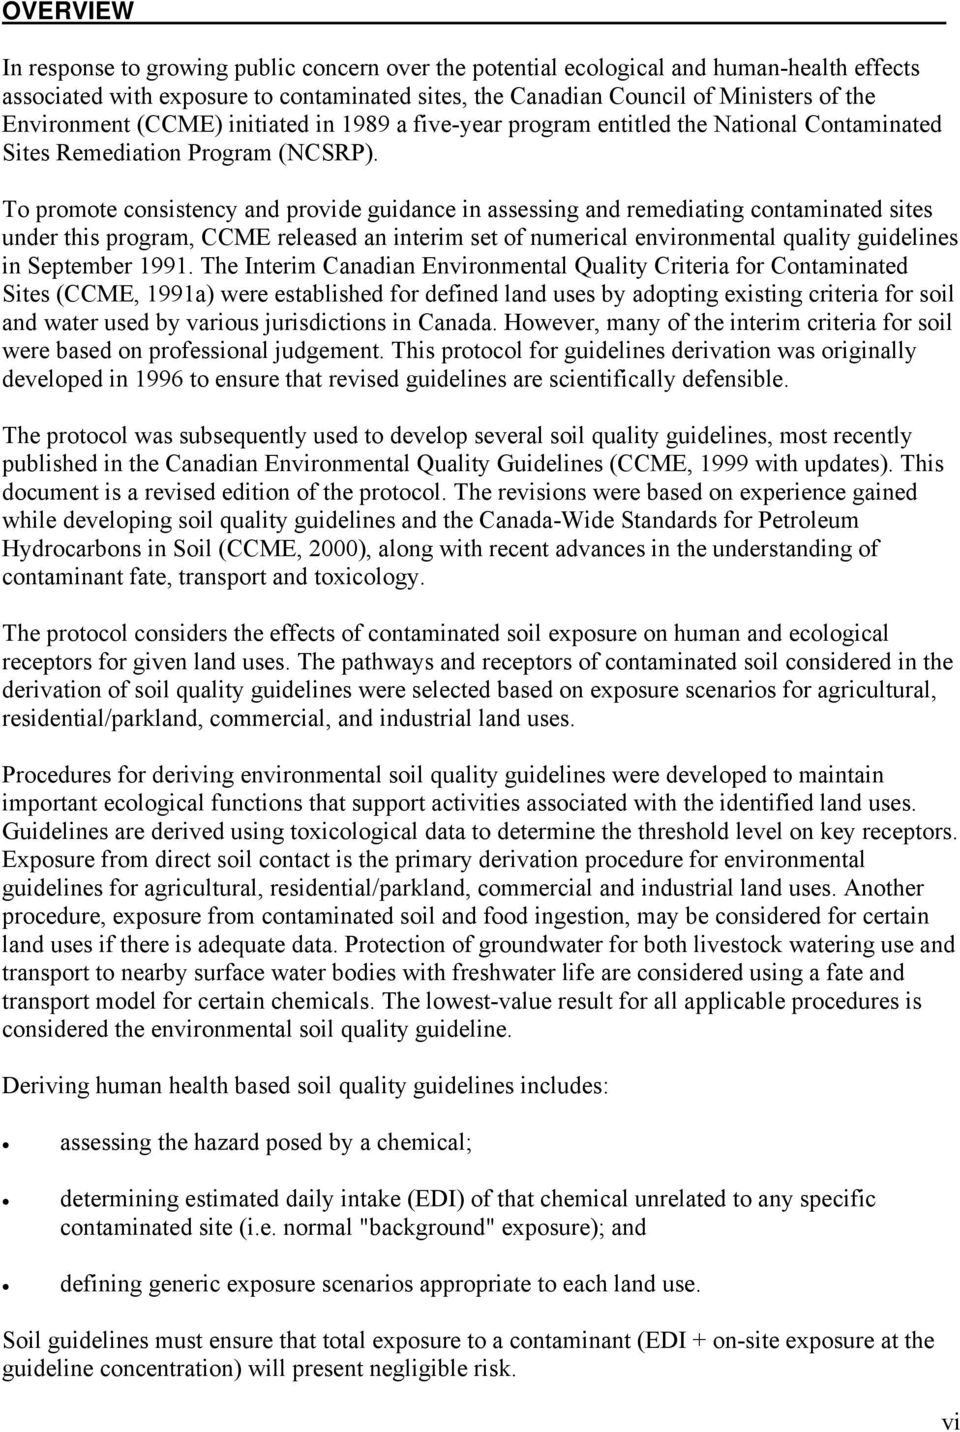 To promote consistency and provide guidance in assessing and remediating contaminated sites under this program, CCME released an interim set of numerical environmental quality guidelines in September